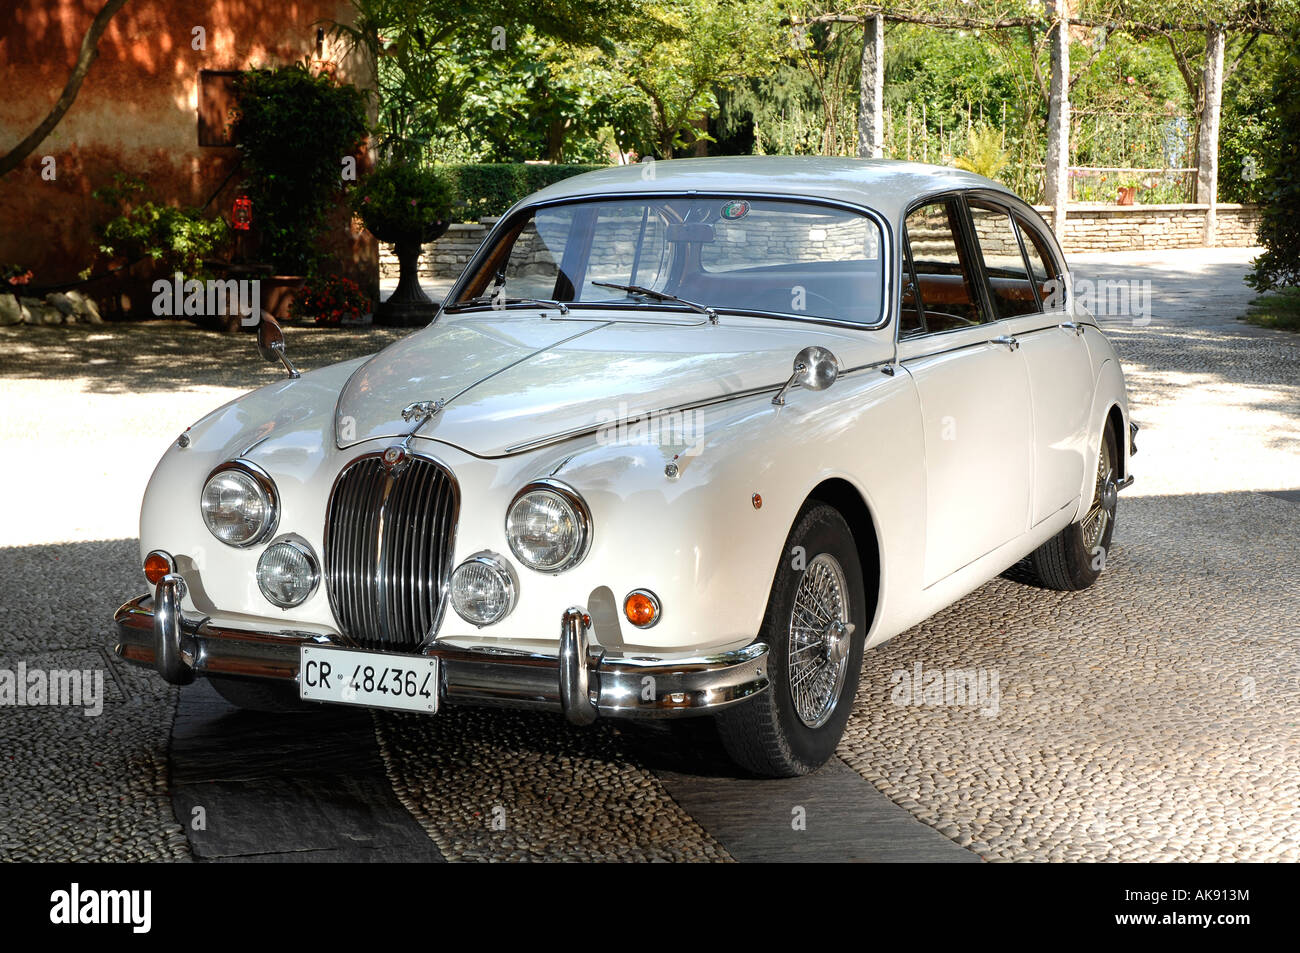 1963 Jaguar Mk2 35 Stock Photo, Royalty Free Image